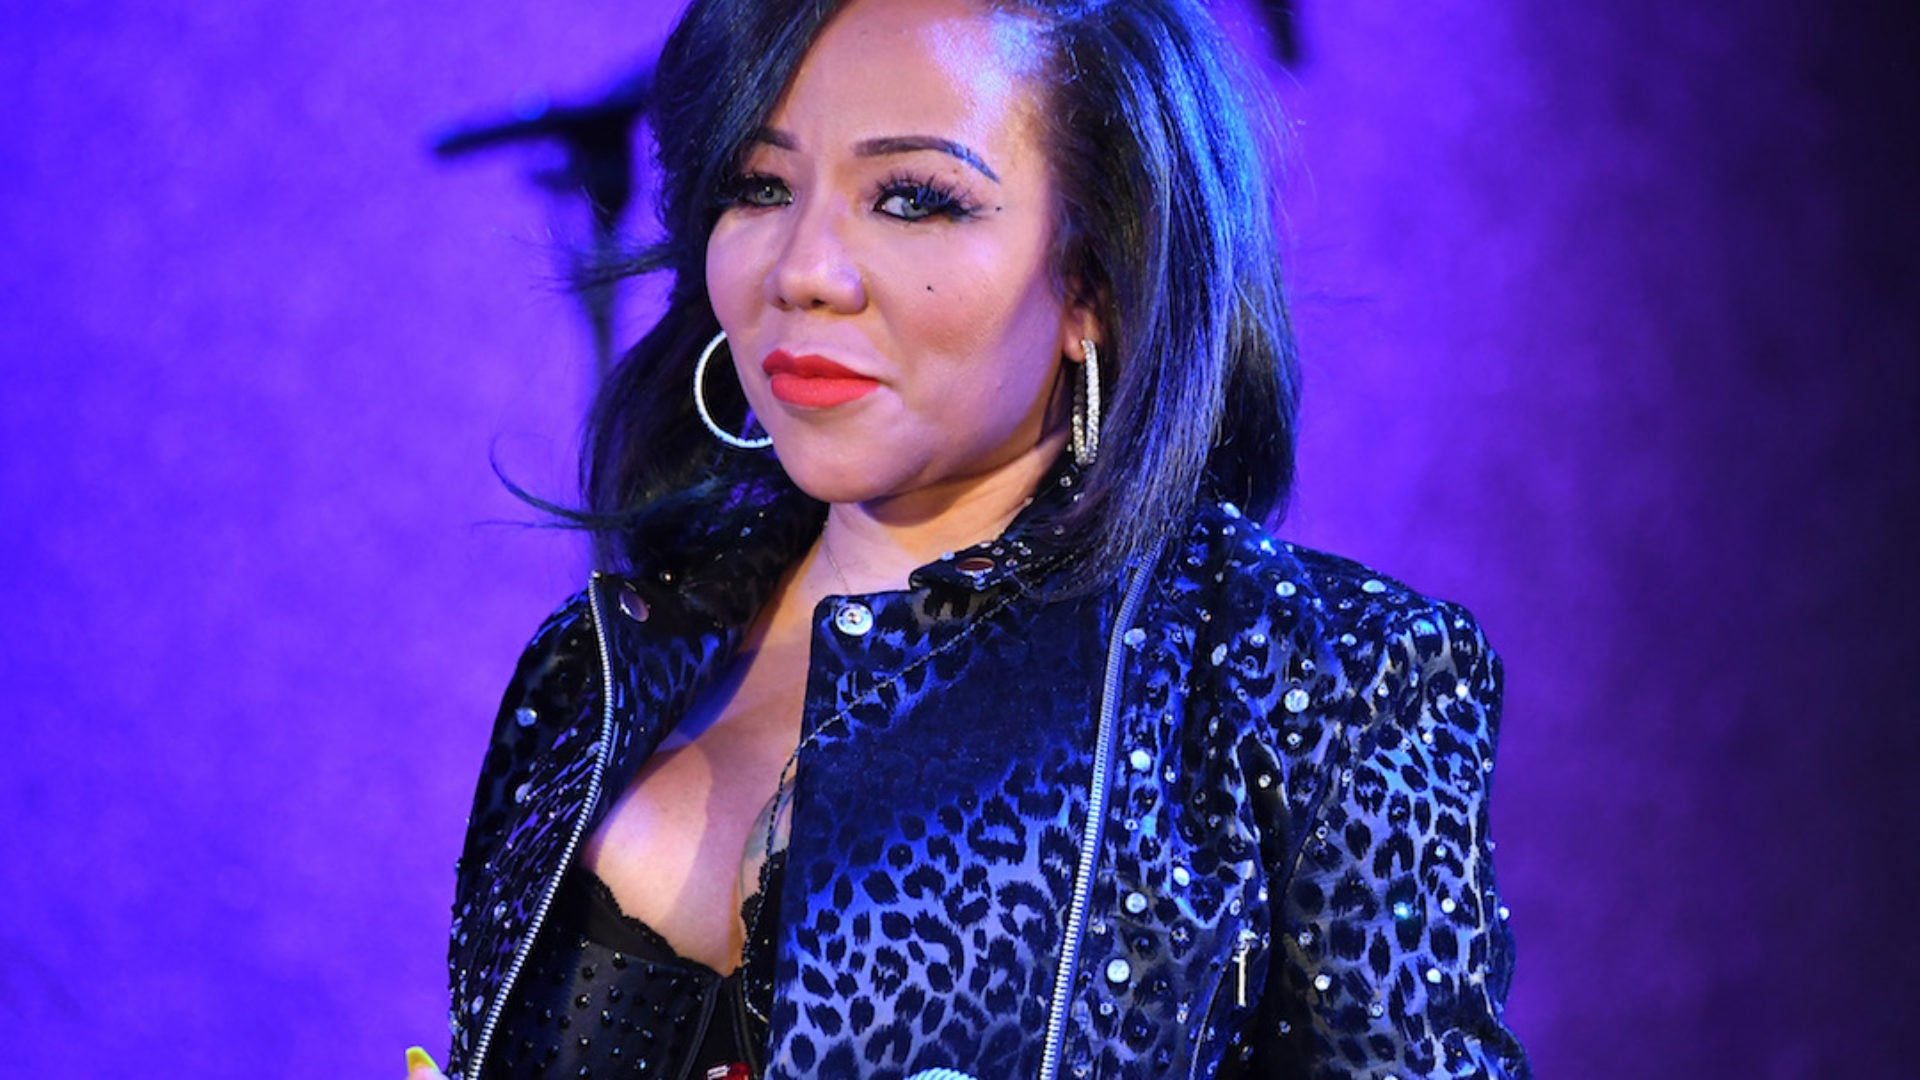 Nearly $1 Million Worth Of Jewelry Stolen From Tiny Harris